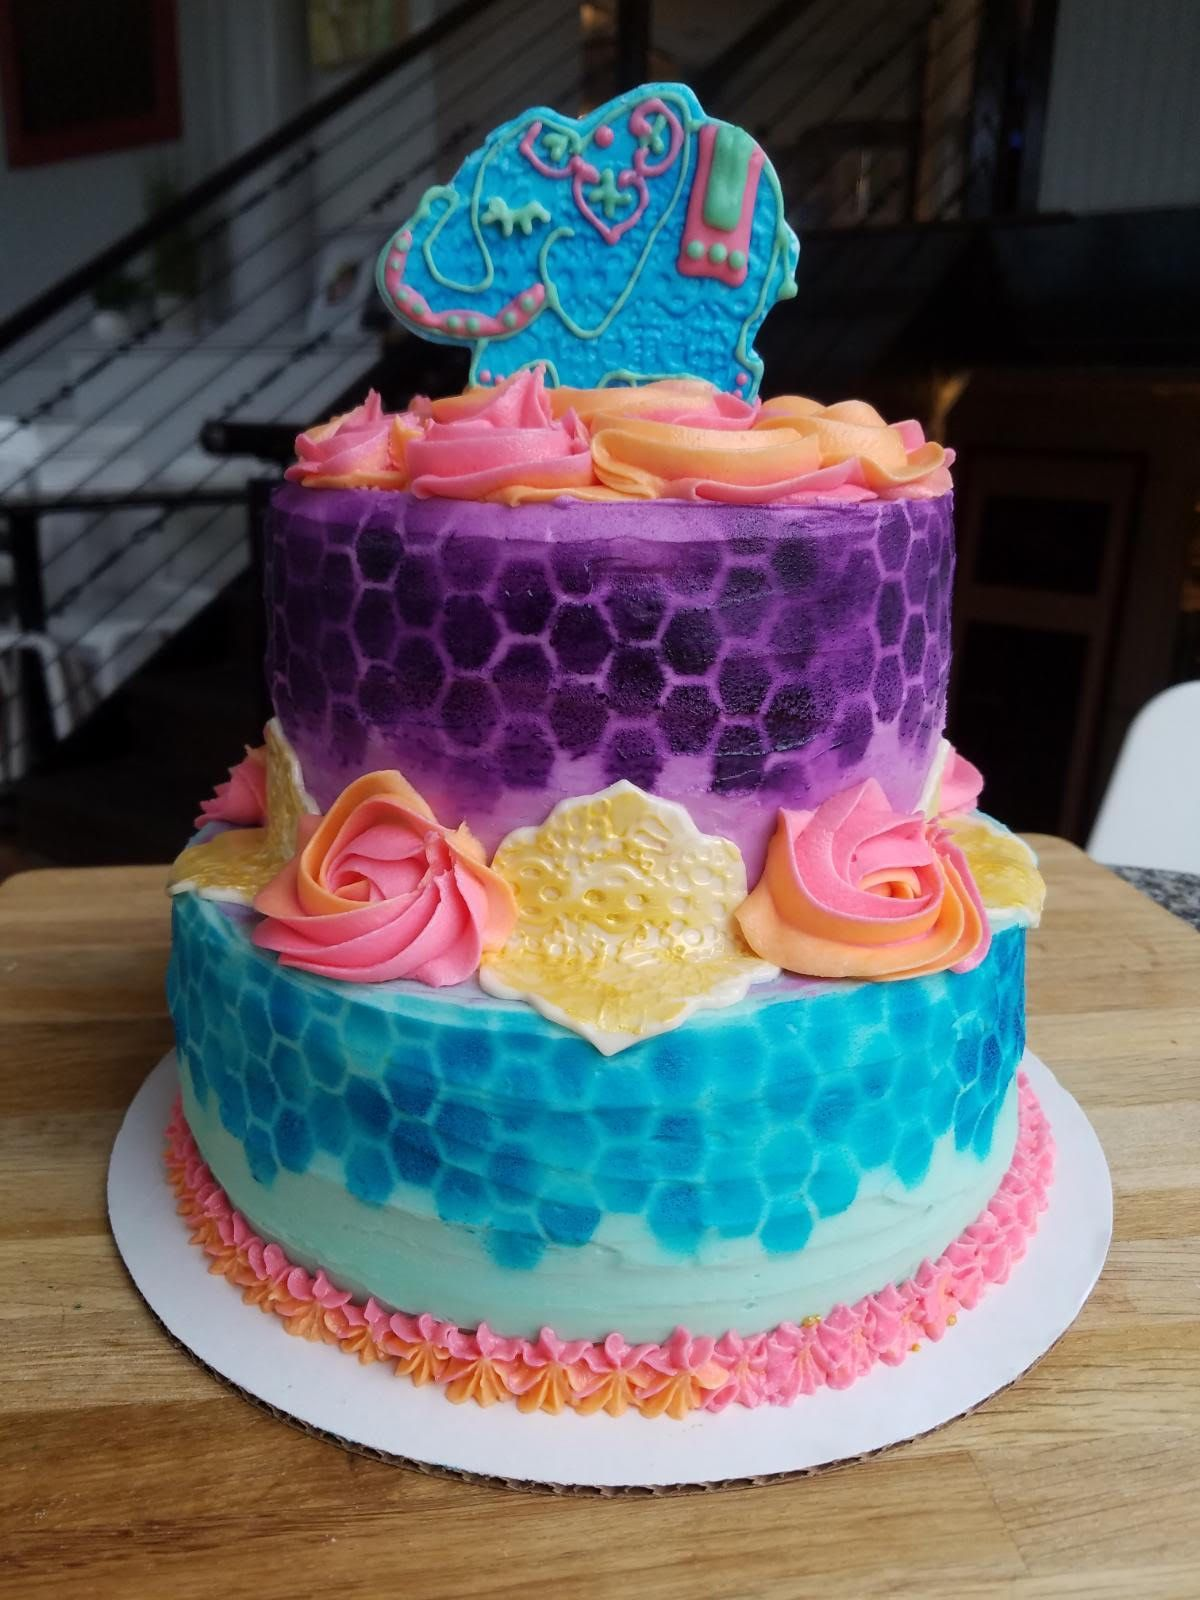 Morrocan baby shower themed cake. Twotiered, twolayered